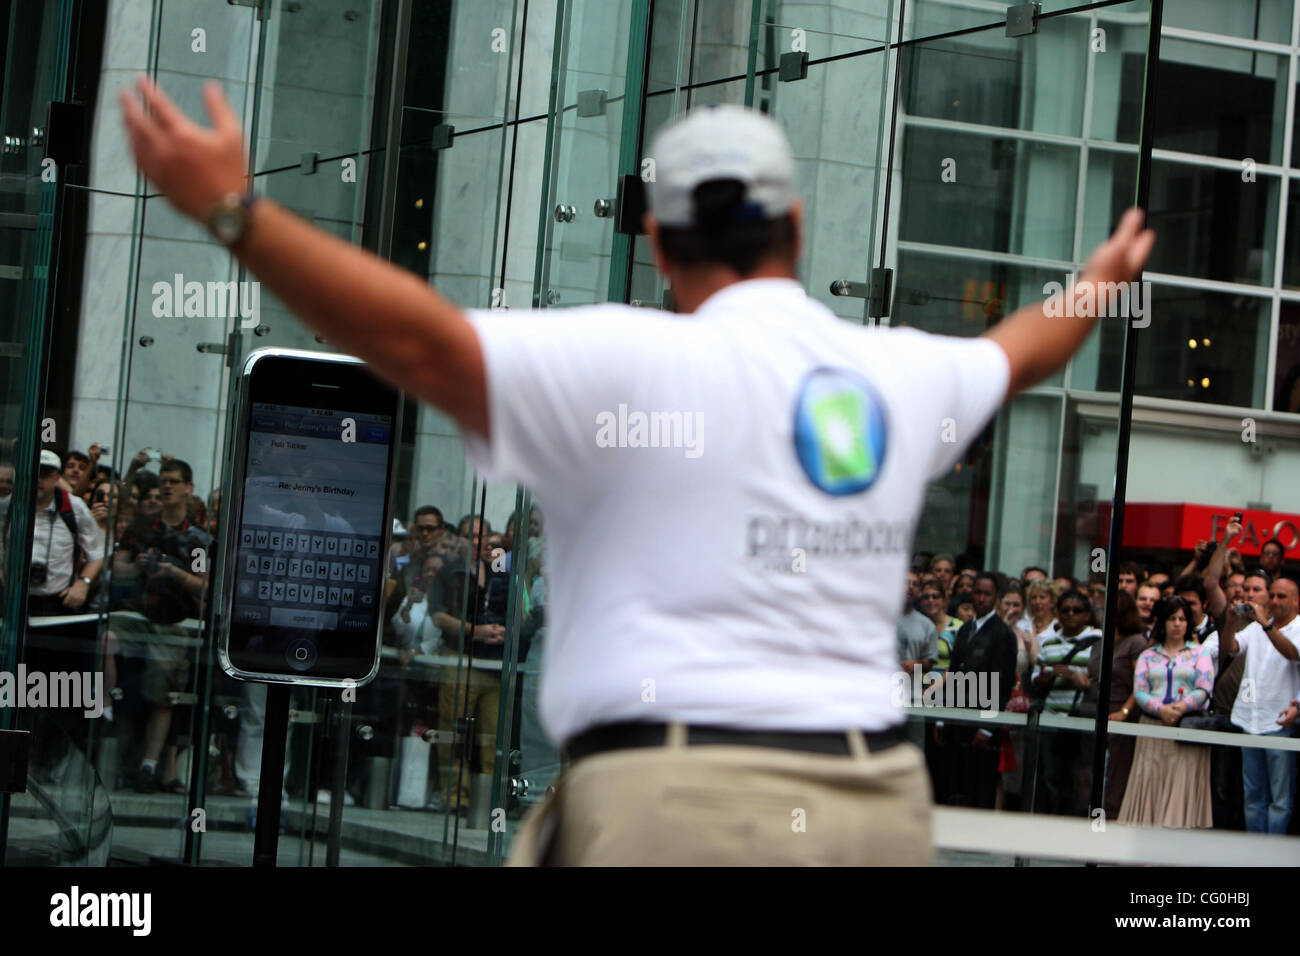 one of the first iphone buyers leaves the store on fifth avenue in new york, june 29, 2007. - Stock Image